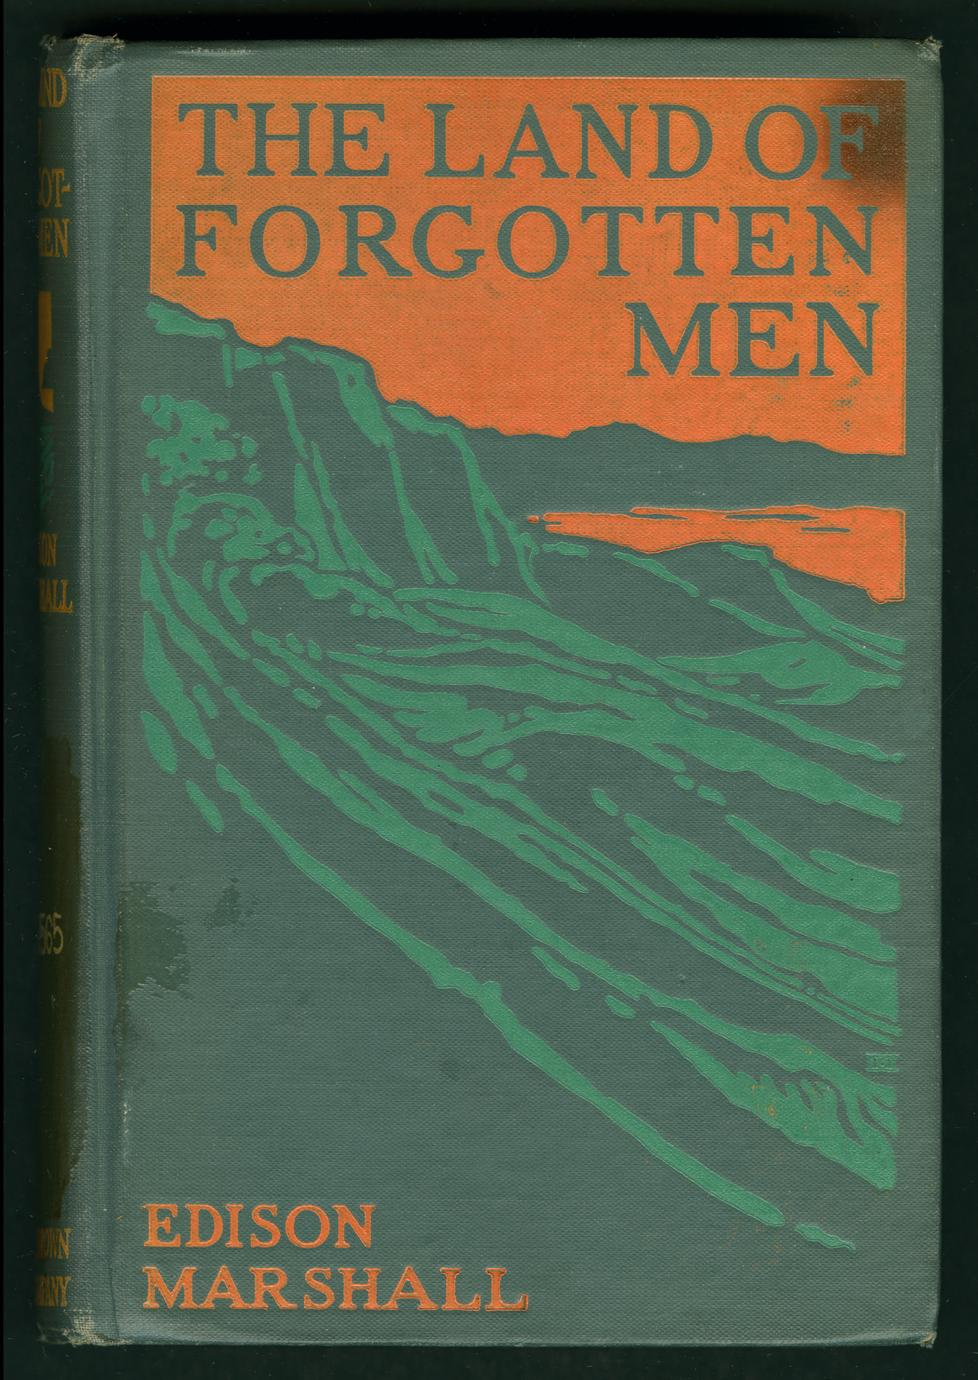 The land of forgotten men (1 of 2)